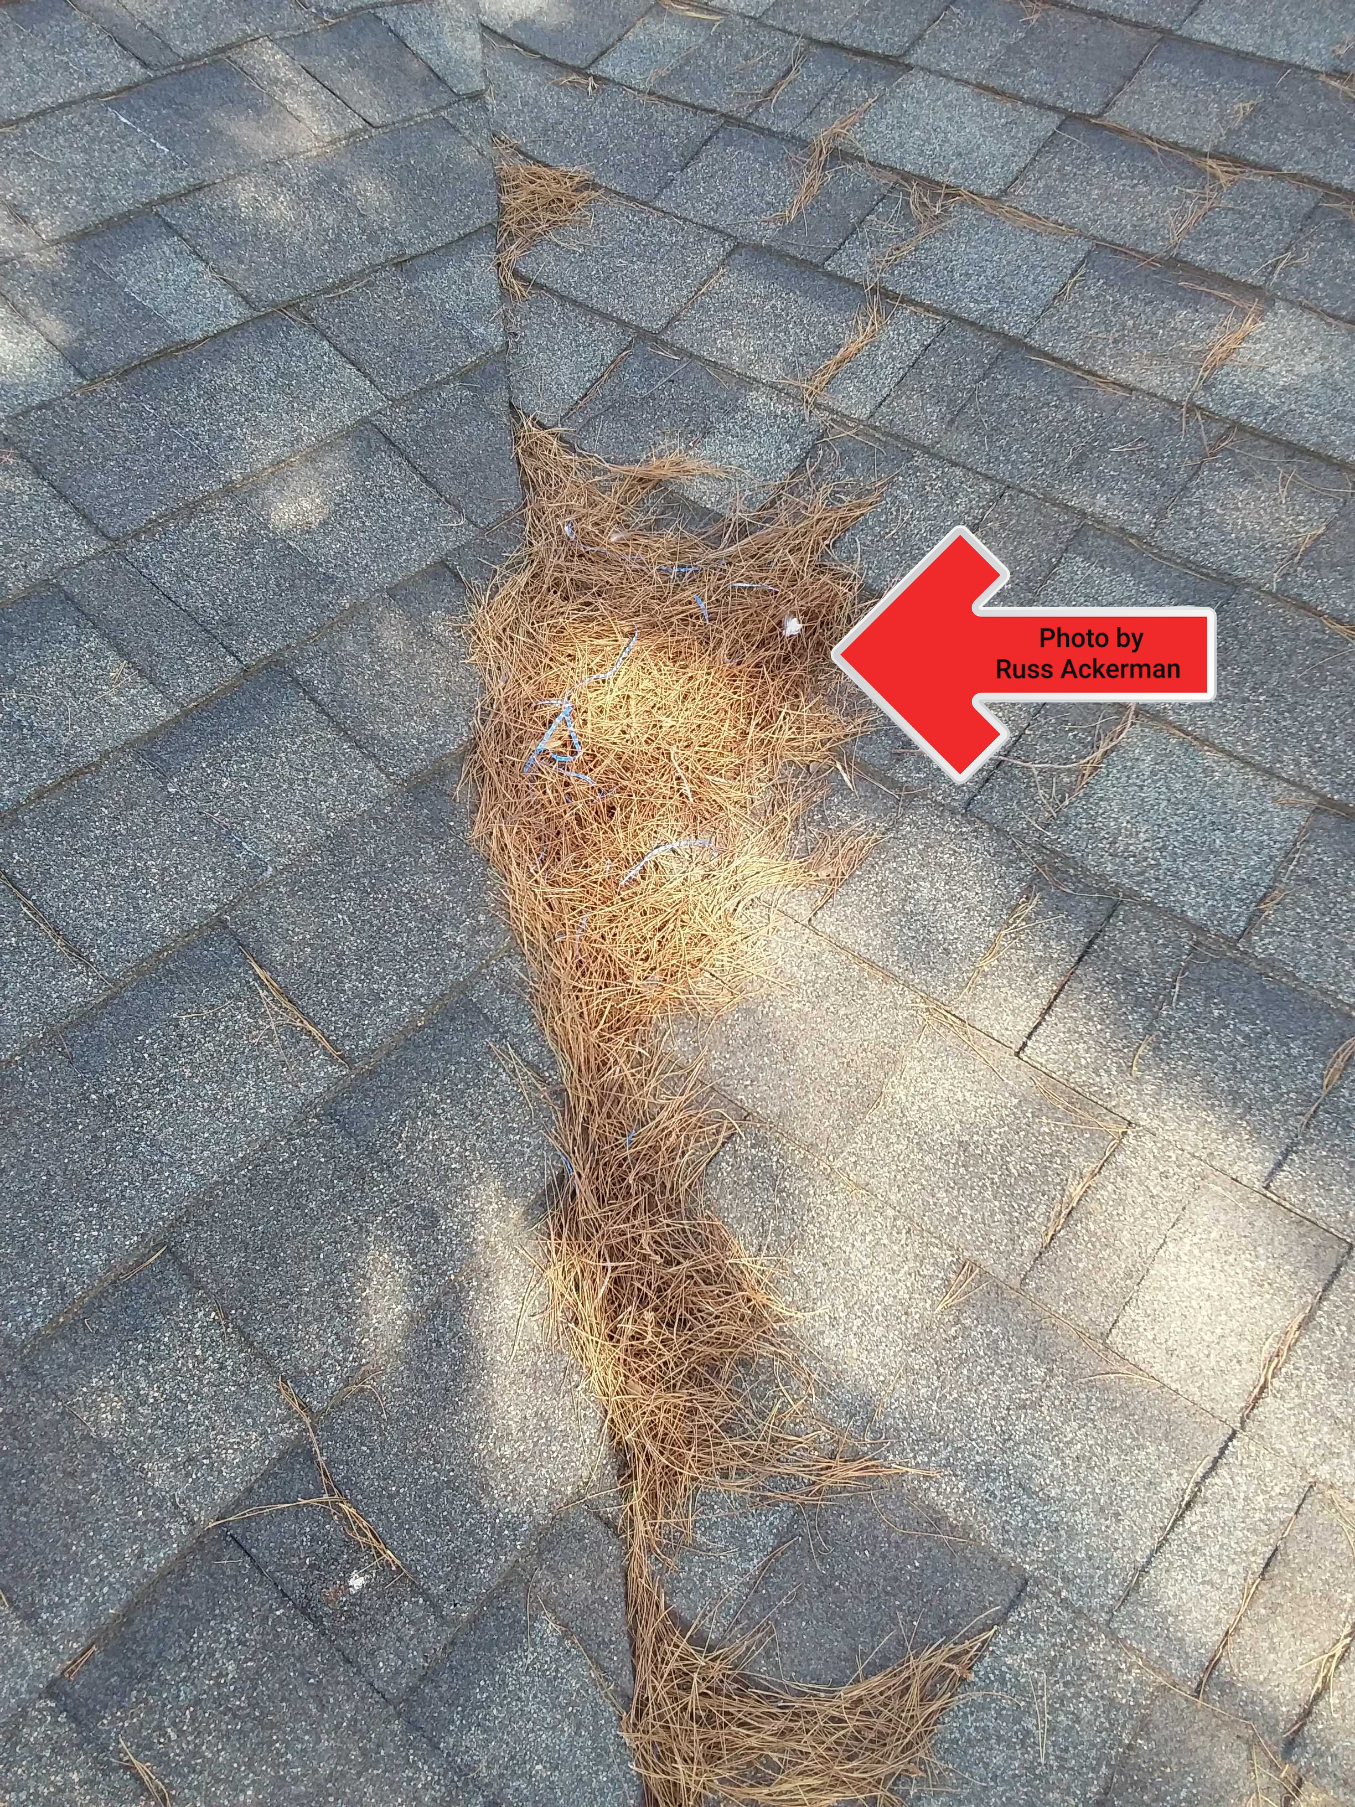 Keeping debris from piling up on any roof will assist in proper drainage and avoid providing a comfy place for birds or rodents.